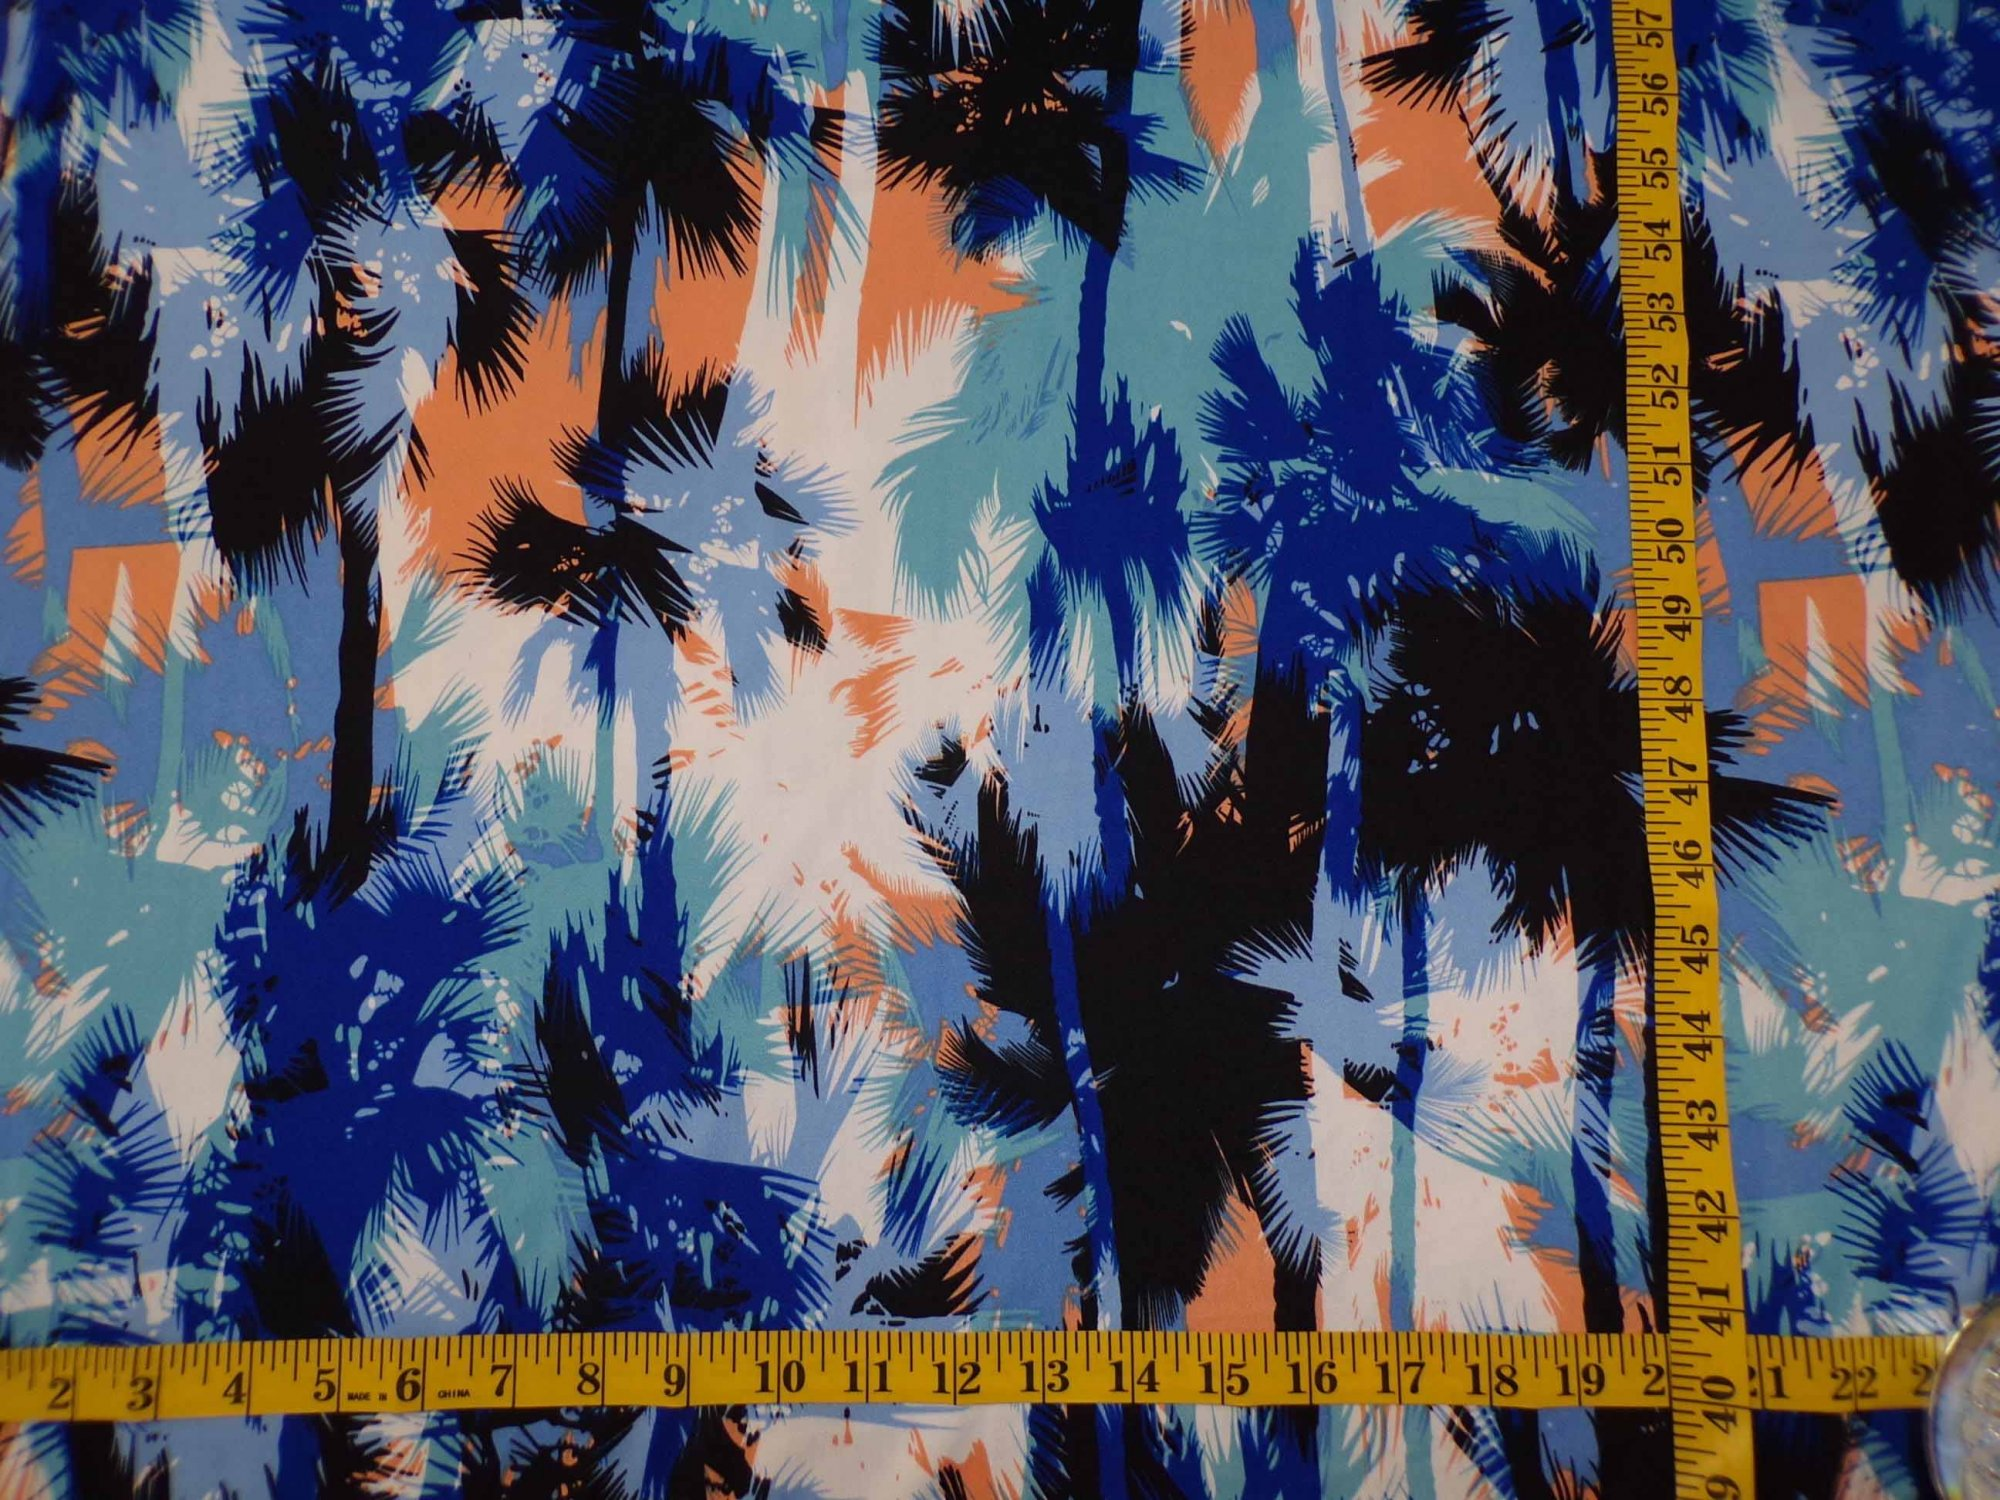 ITY Jersey - Blue Tan and Brown Palm Tree Print